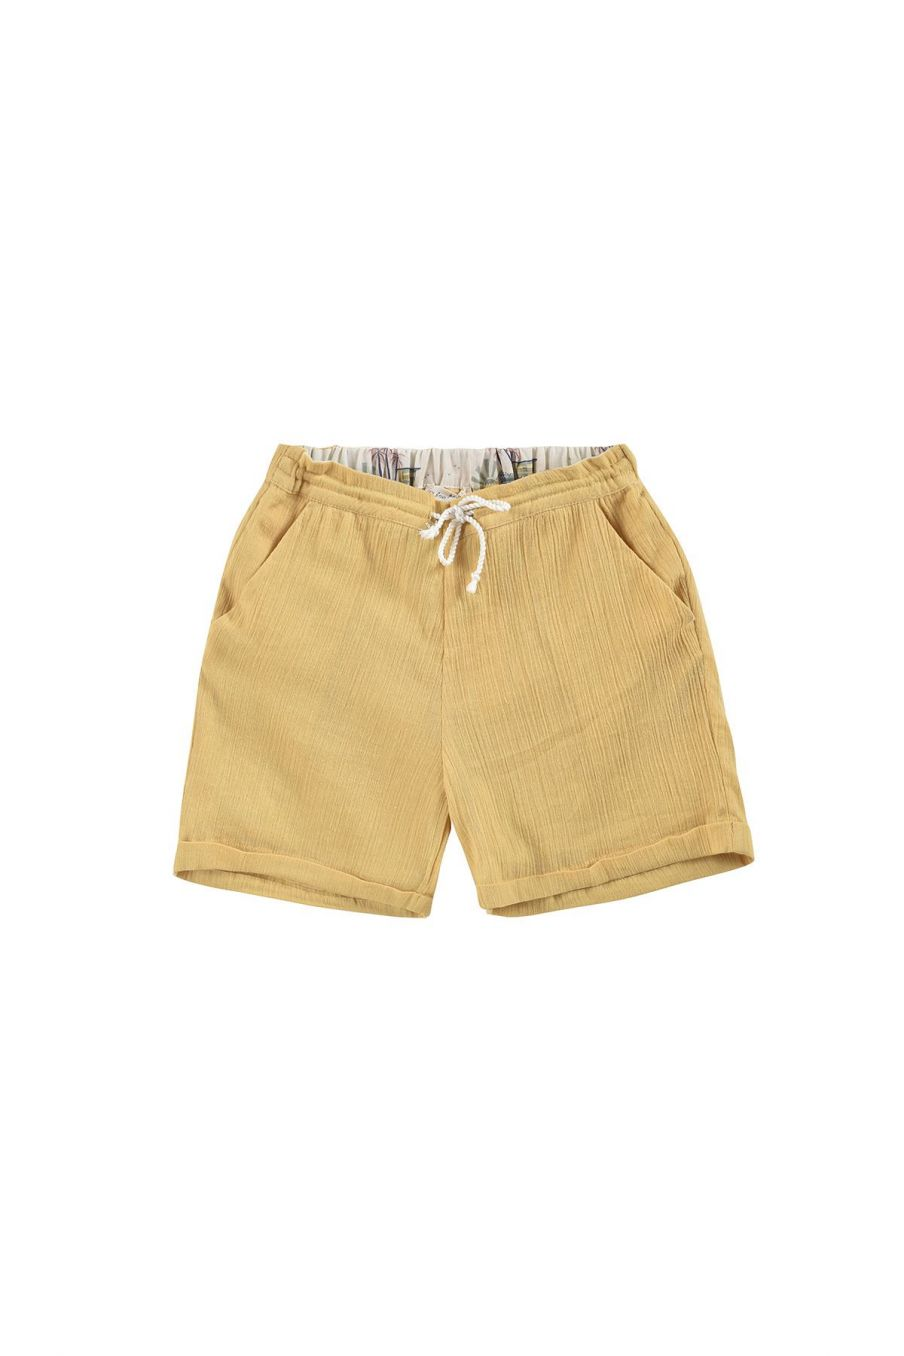 boheme chic vintage short garcon aliki soft honey